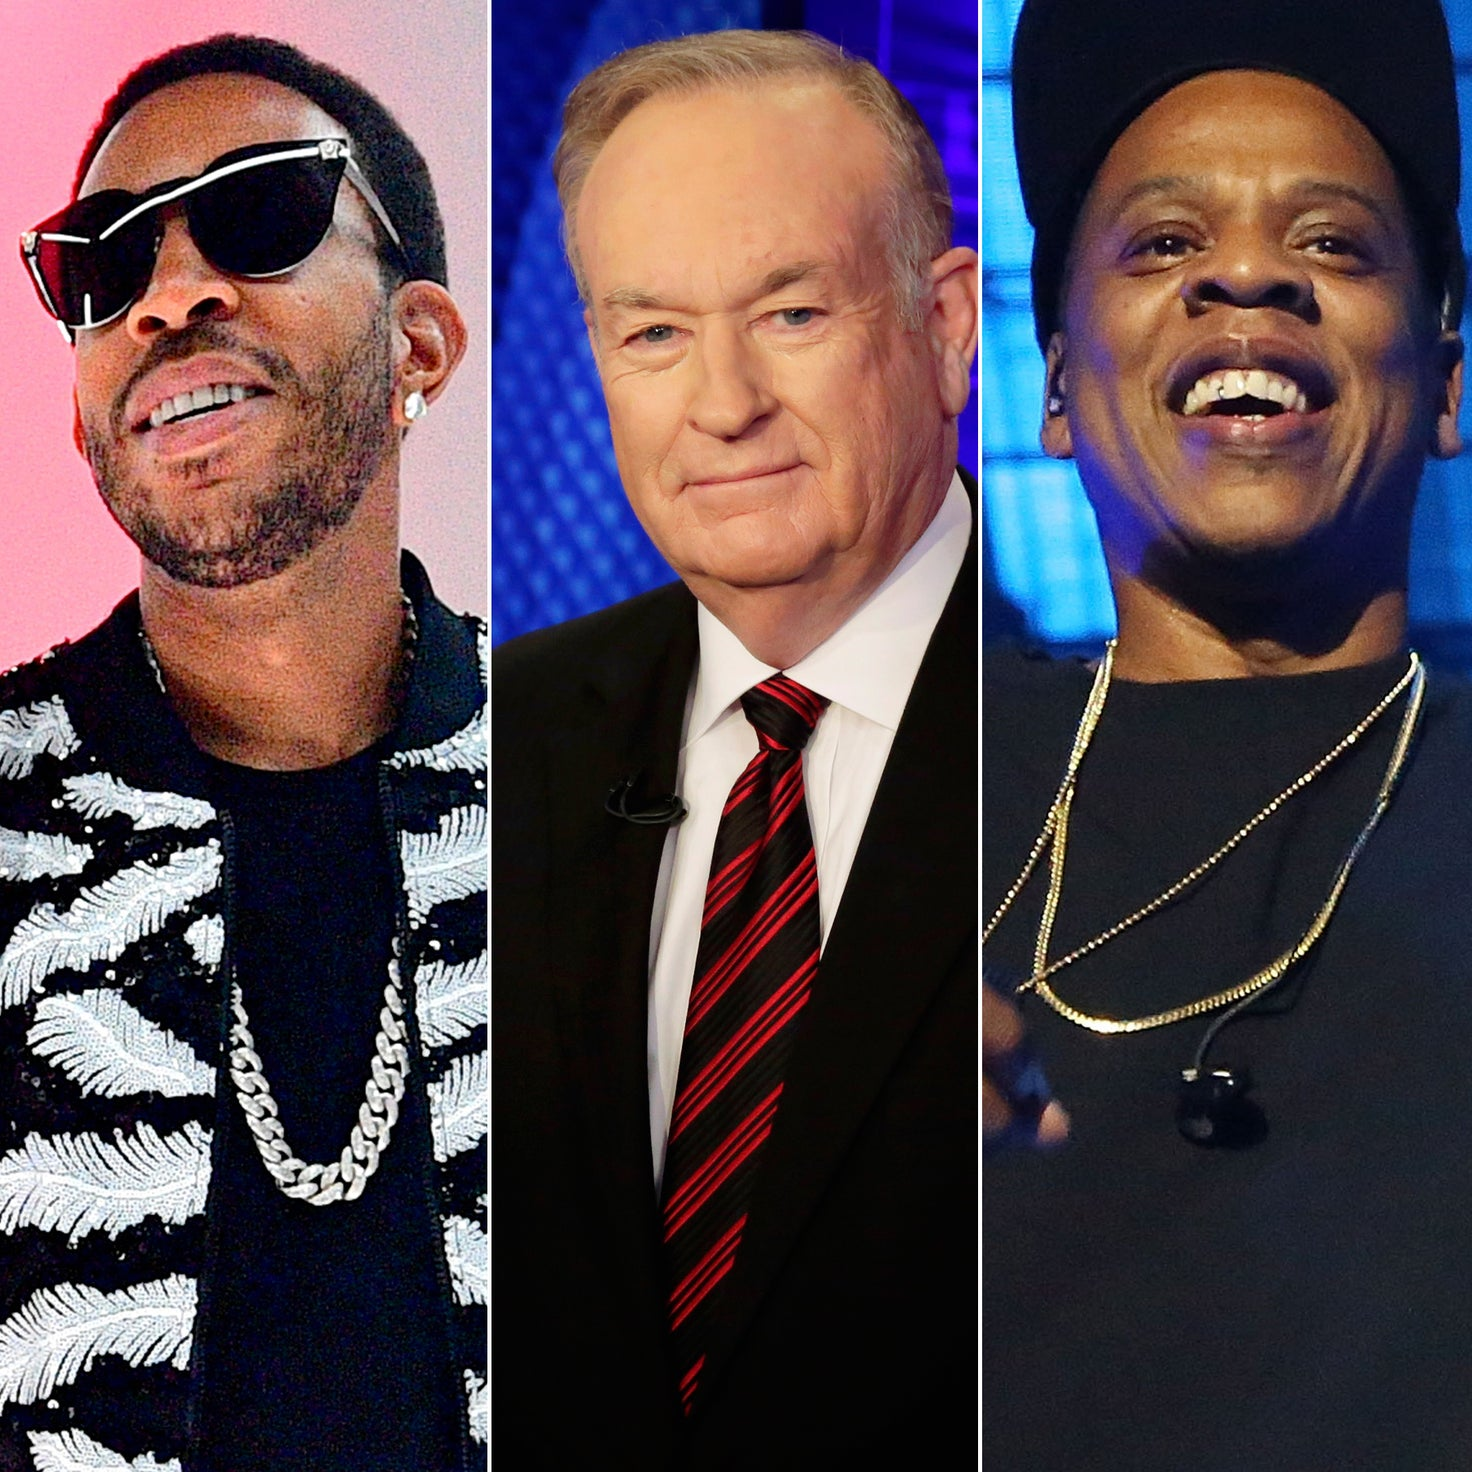 A Look Back At The Many Times Hip-Hop Blasted Bill O'Reilly